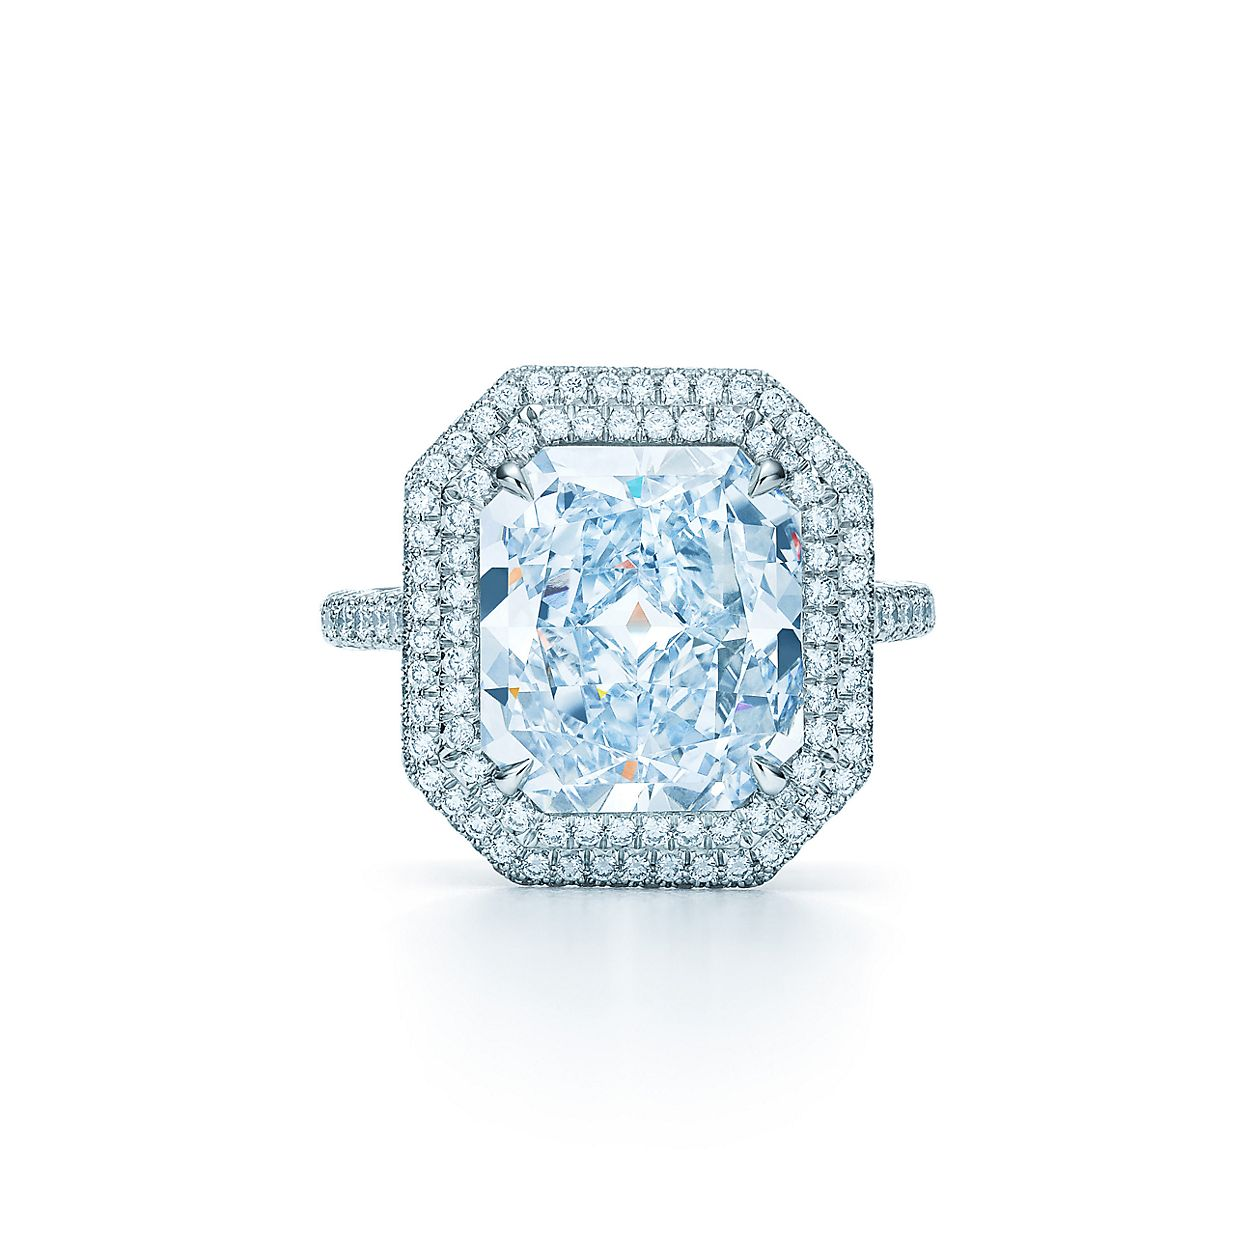 Tiffany Soleste® ring with an internally flawless, 5.02-carat ...